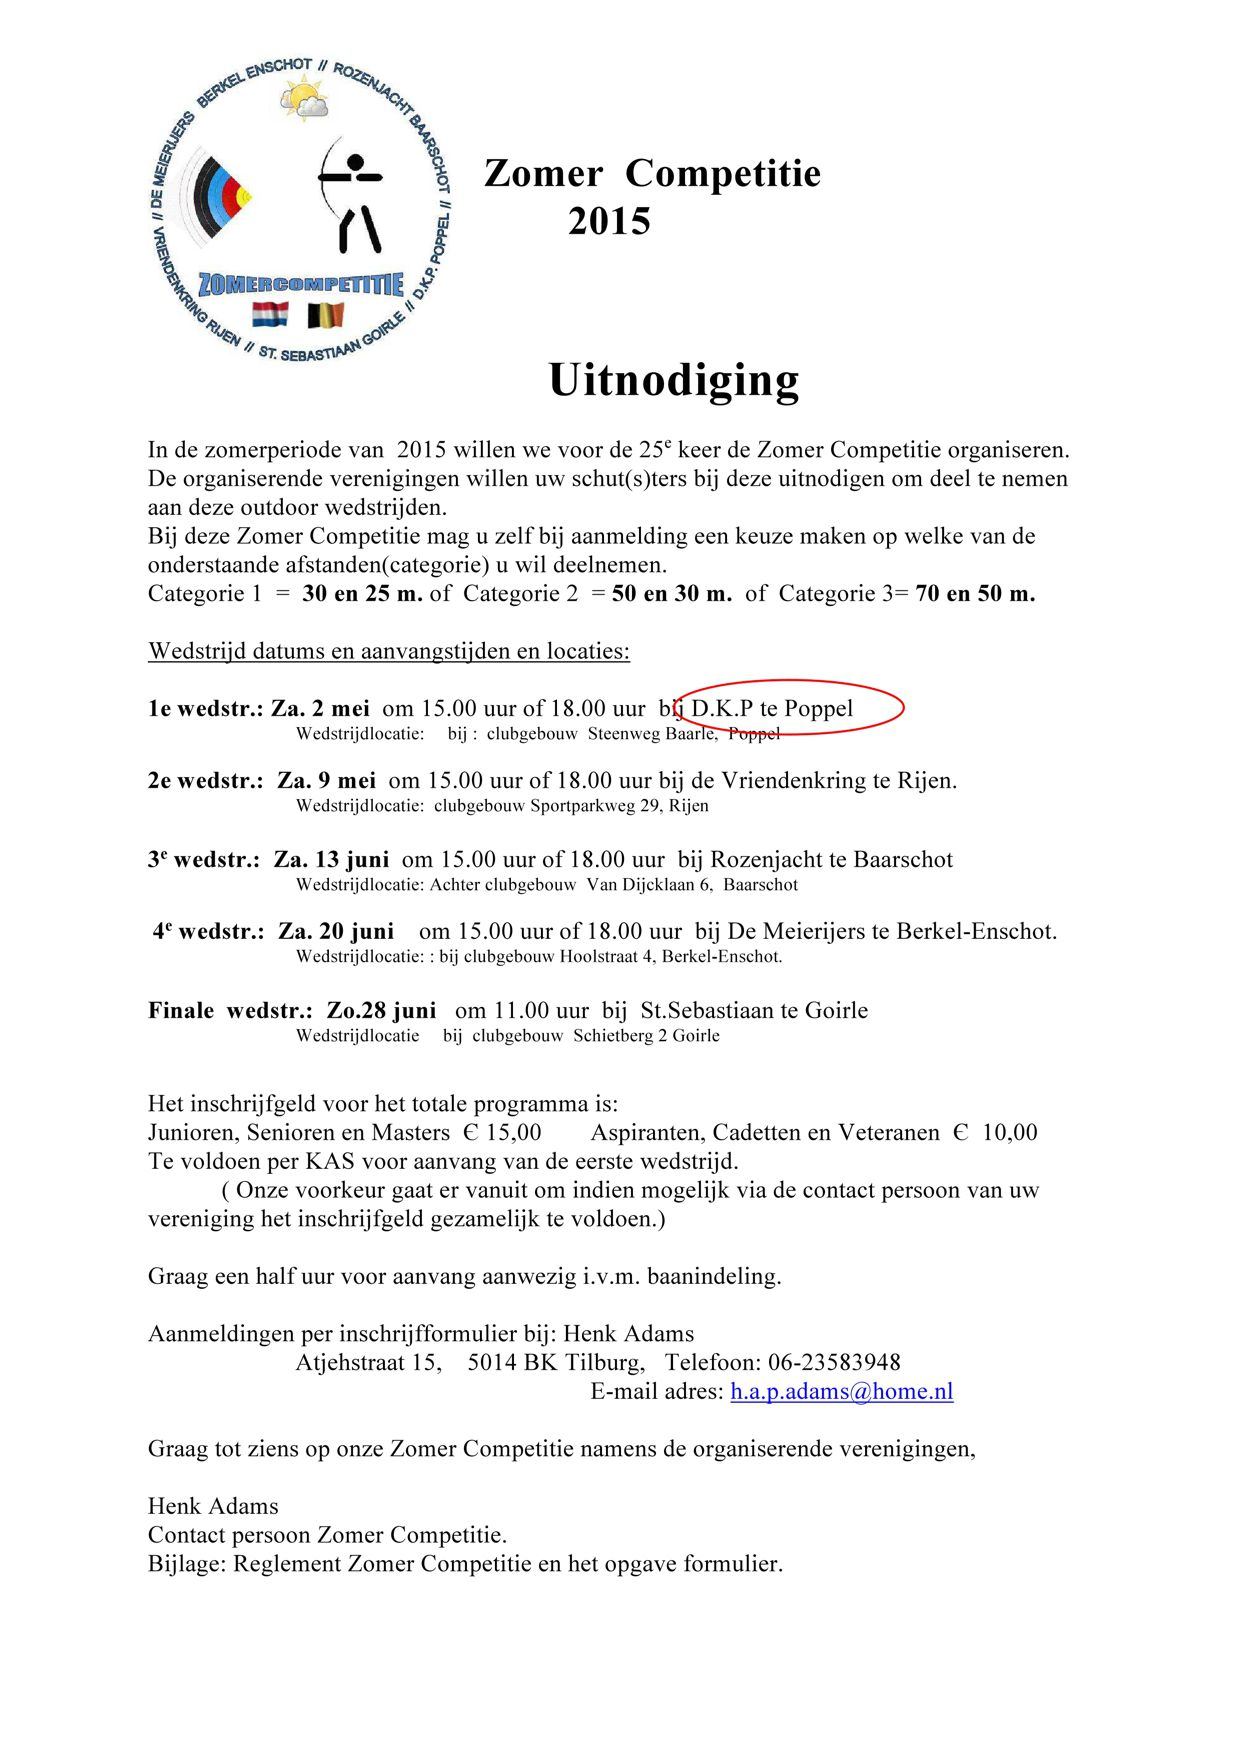 Uitnodiging Zomer Competitie  2015_page1